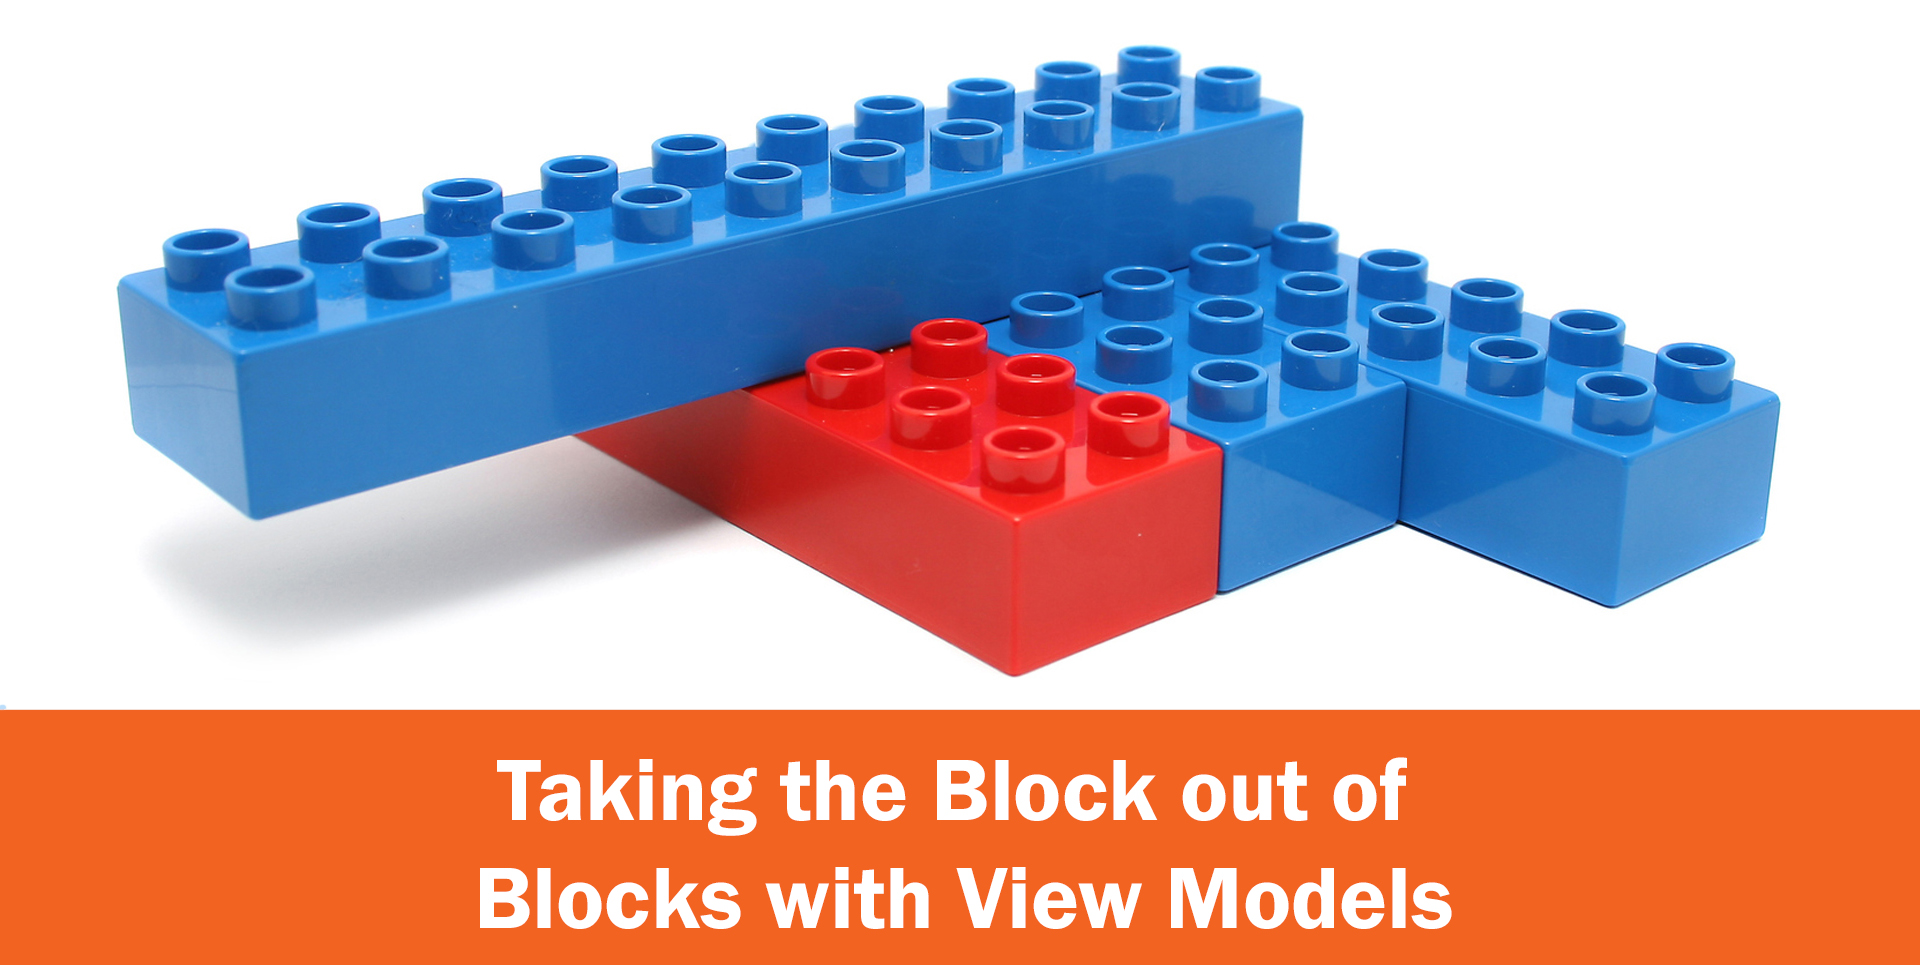 Taking the Block out of Blocks with View Models